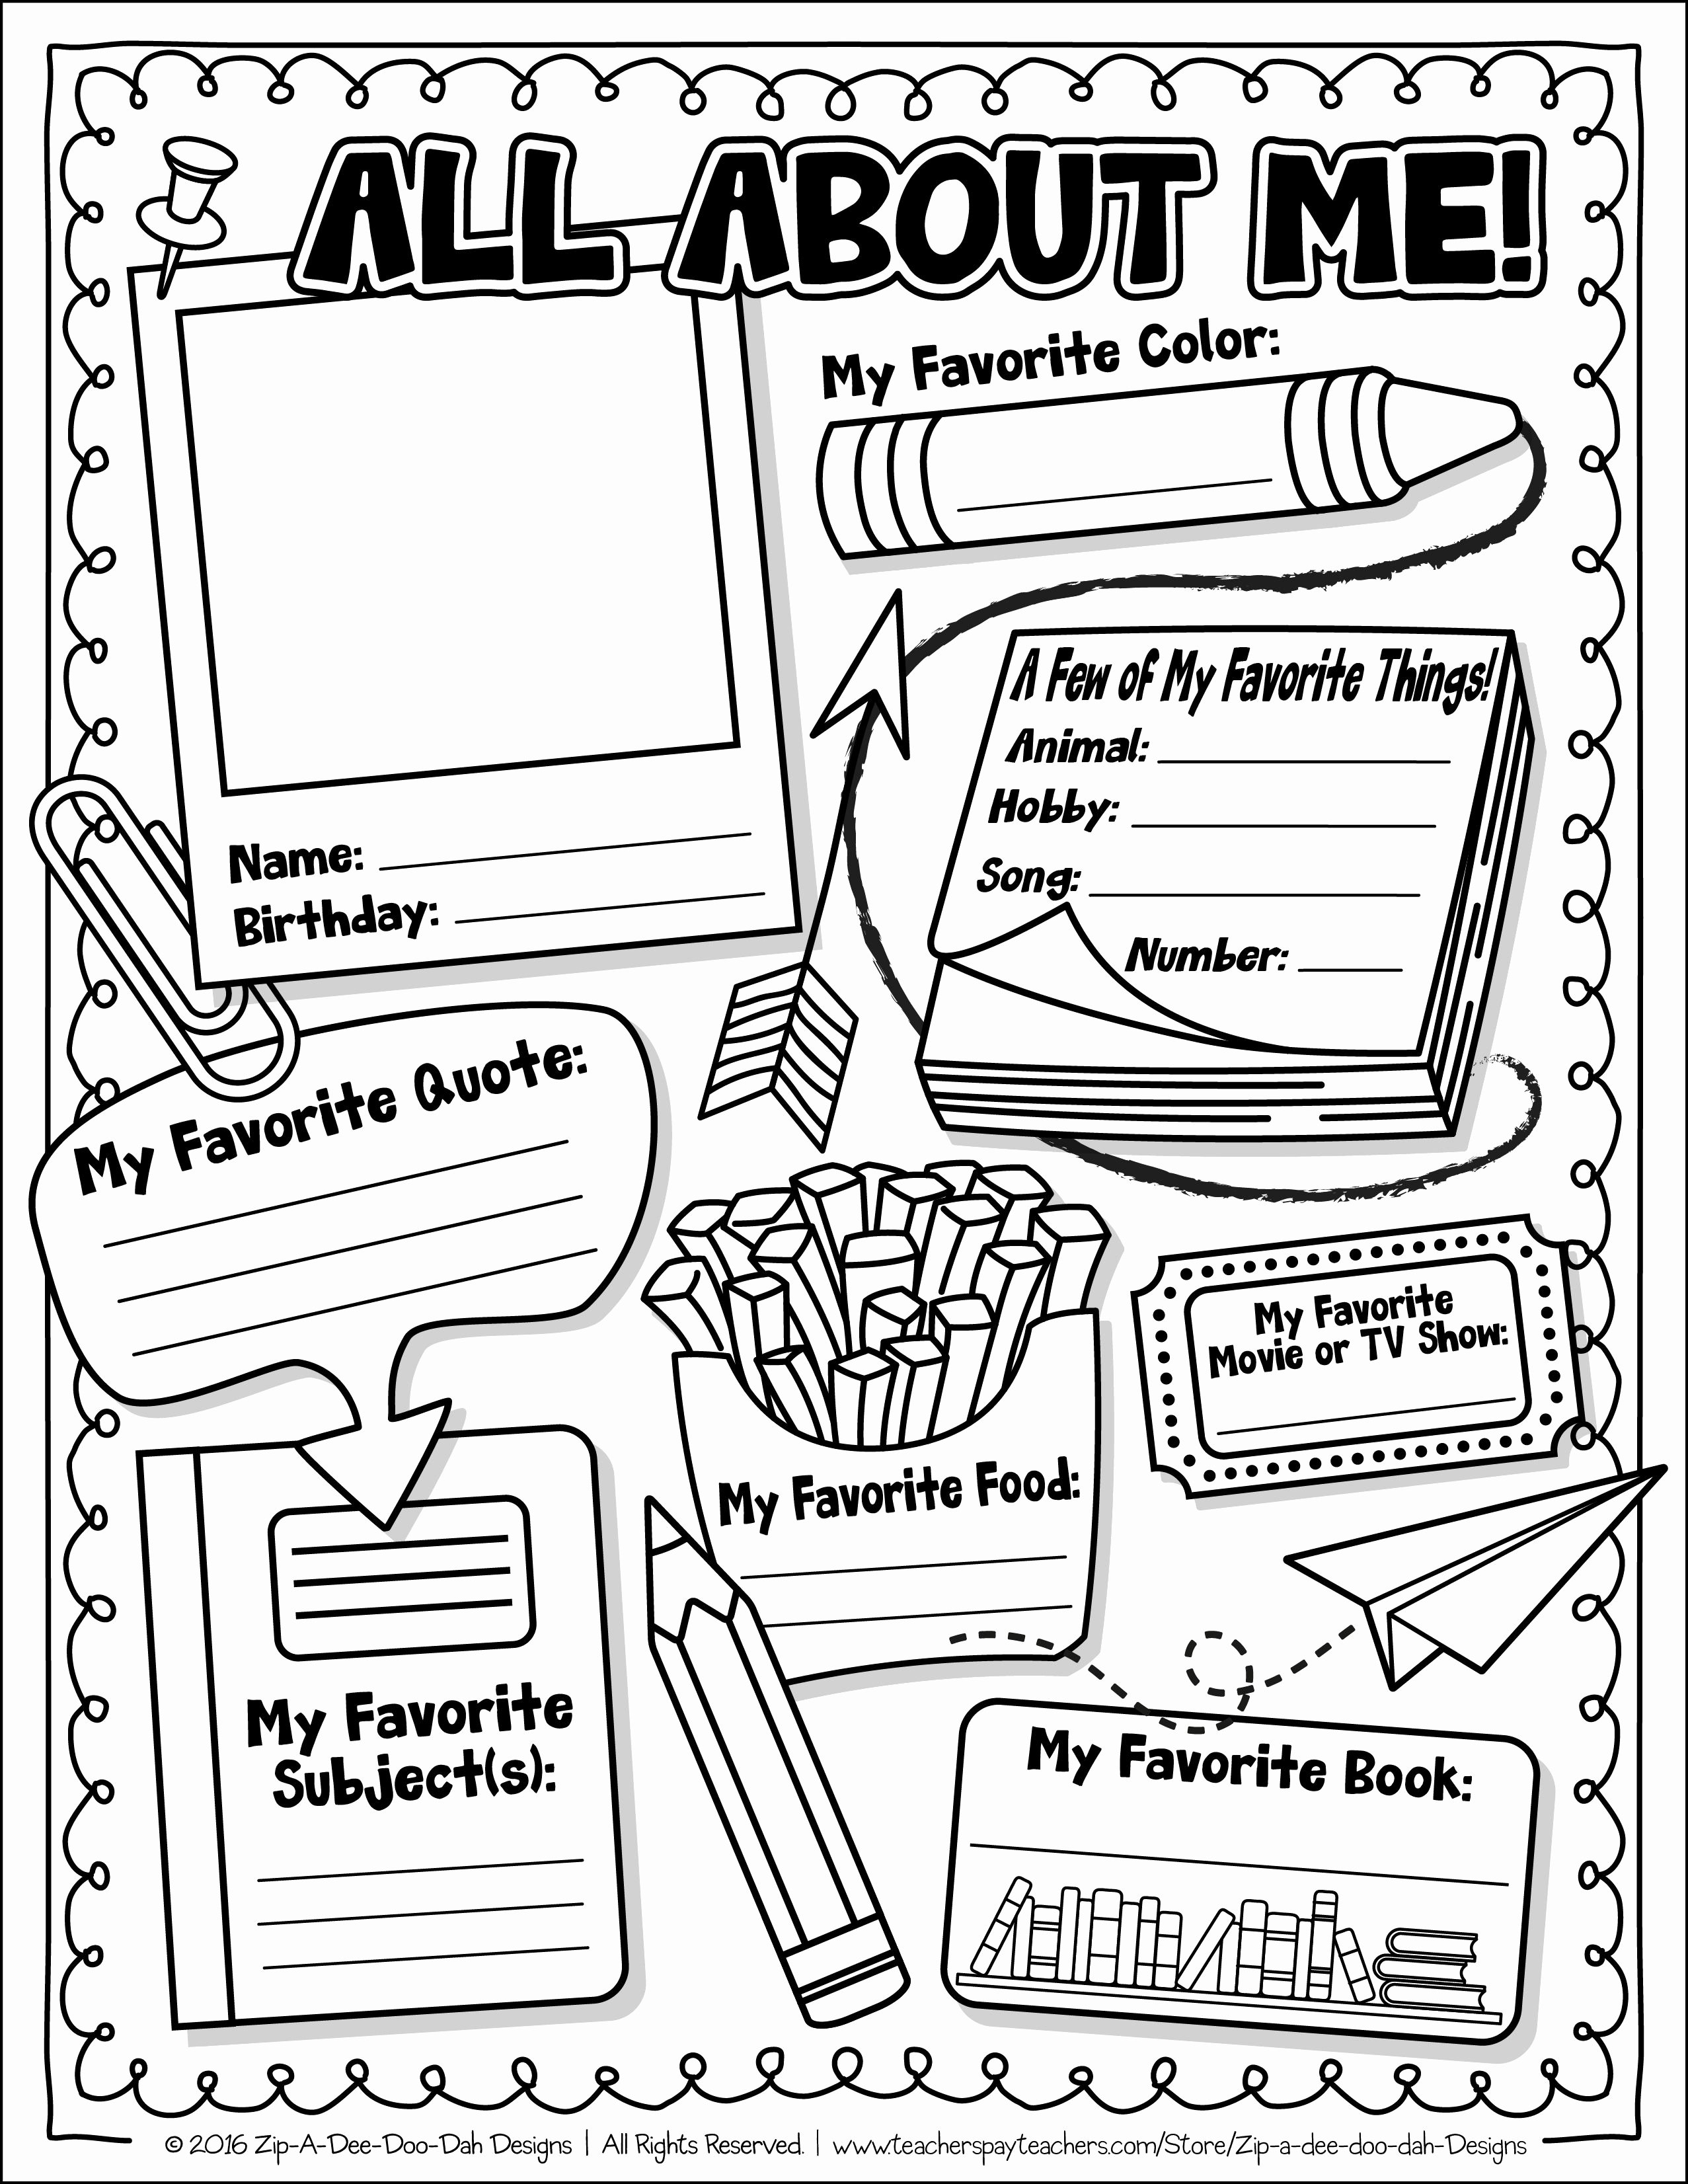 All About Me Printable Worksheet Luxury Pin On Teacher Crap